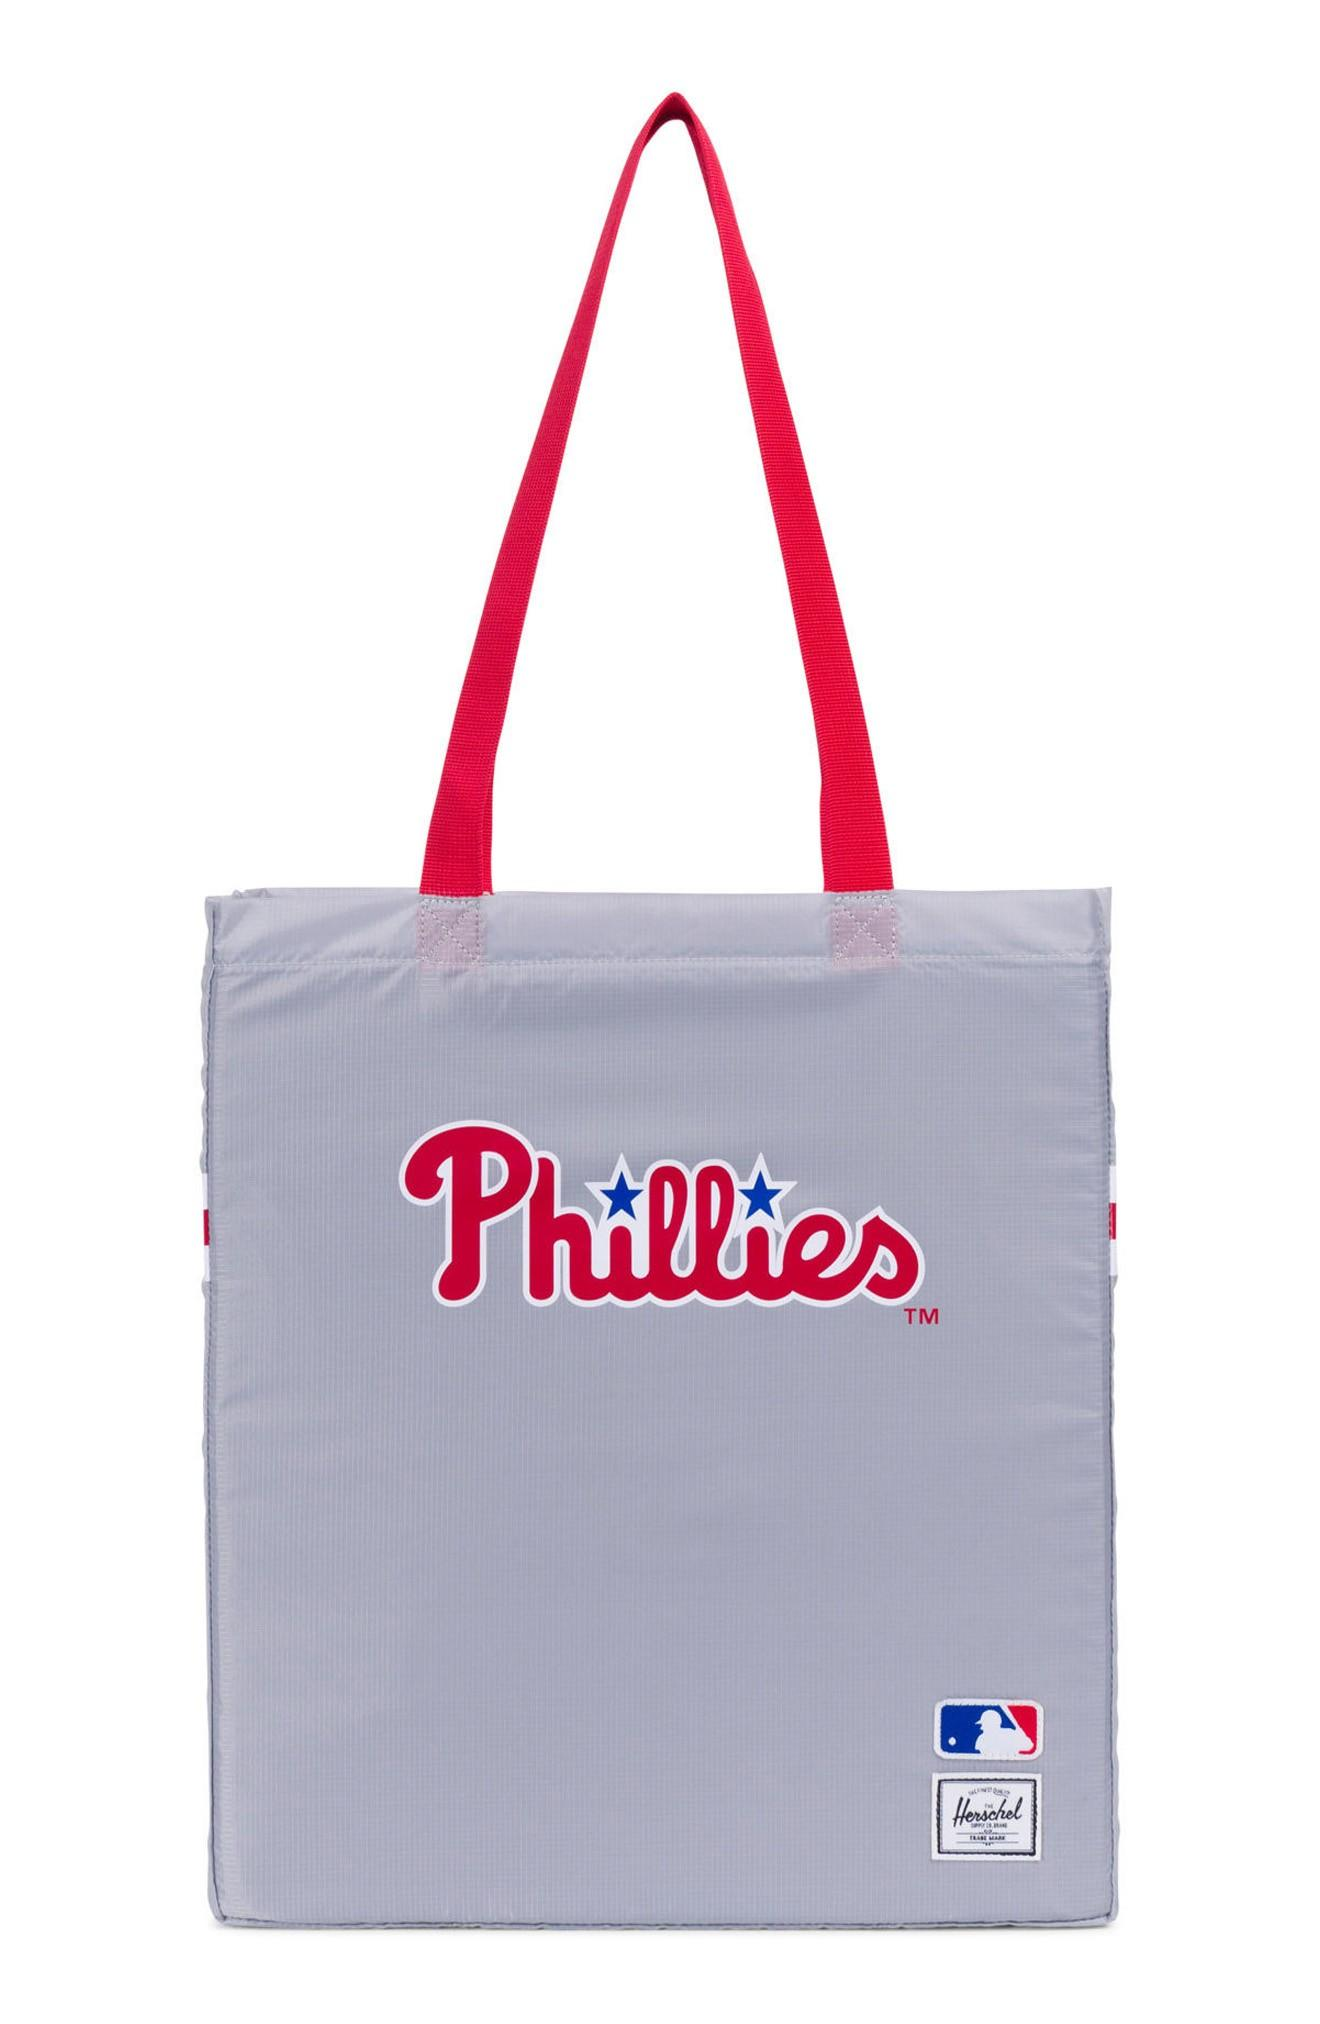 88b06ddd1b Herschel Supply Co. Packable - Mlb National League Tote Bag In ...